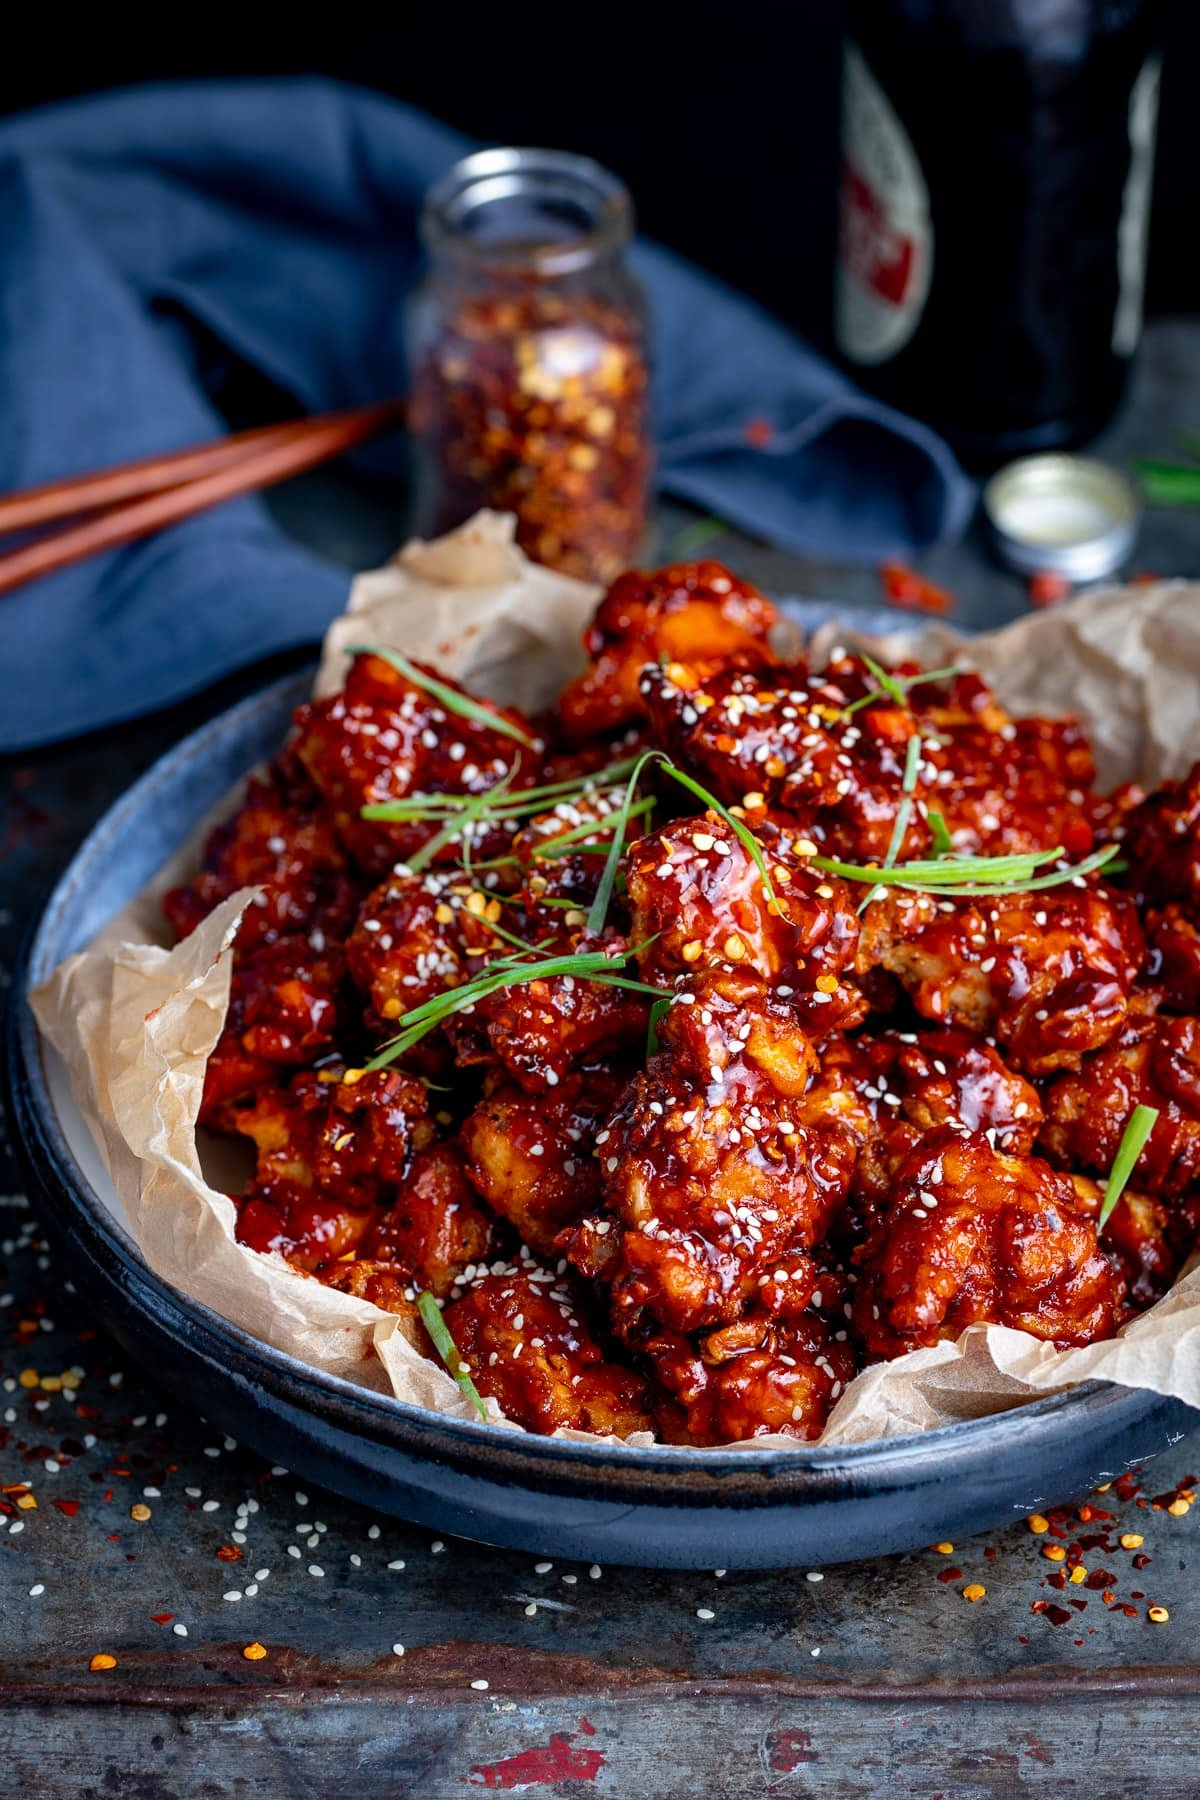 Korean fried chicken in a blue bowl lined with paper. Napkin, chopsticks and jar of chilli flakes in the background.